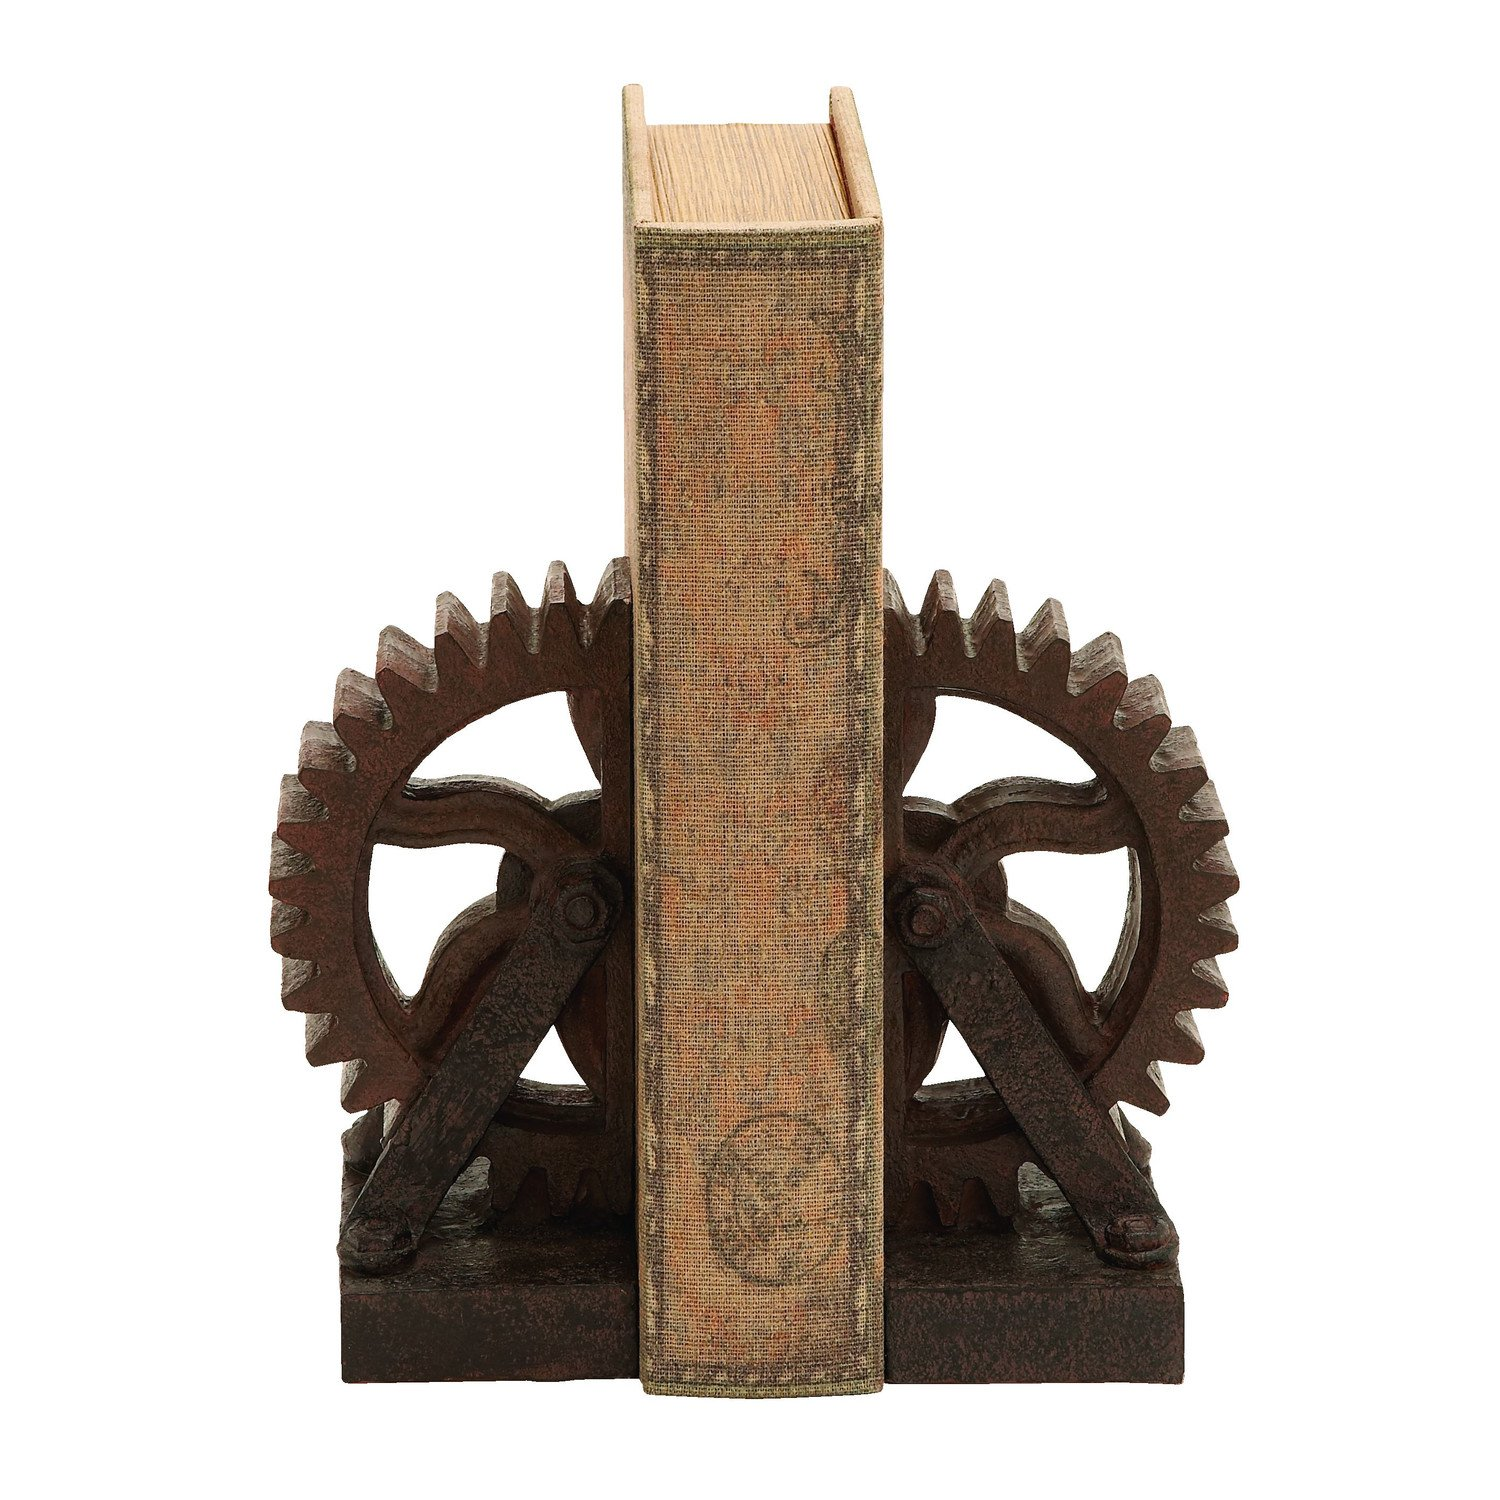 Industrial Gear Bookends Rustic Antique Steampunk Chic Decor Set of 2